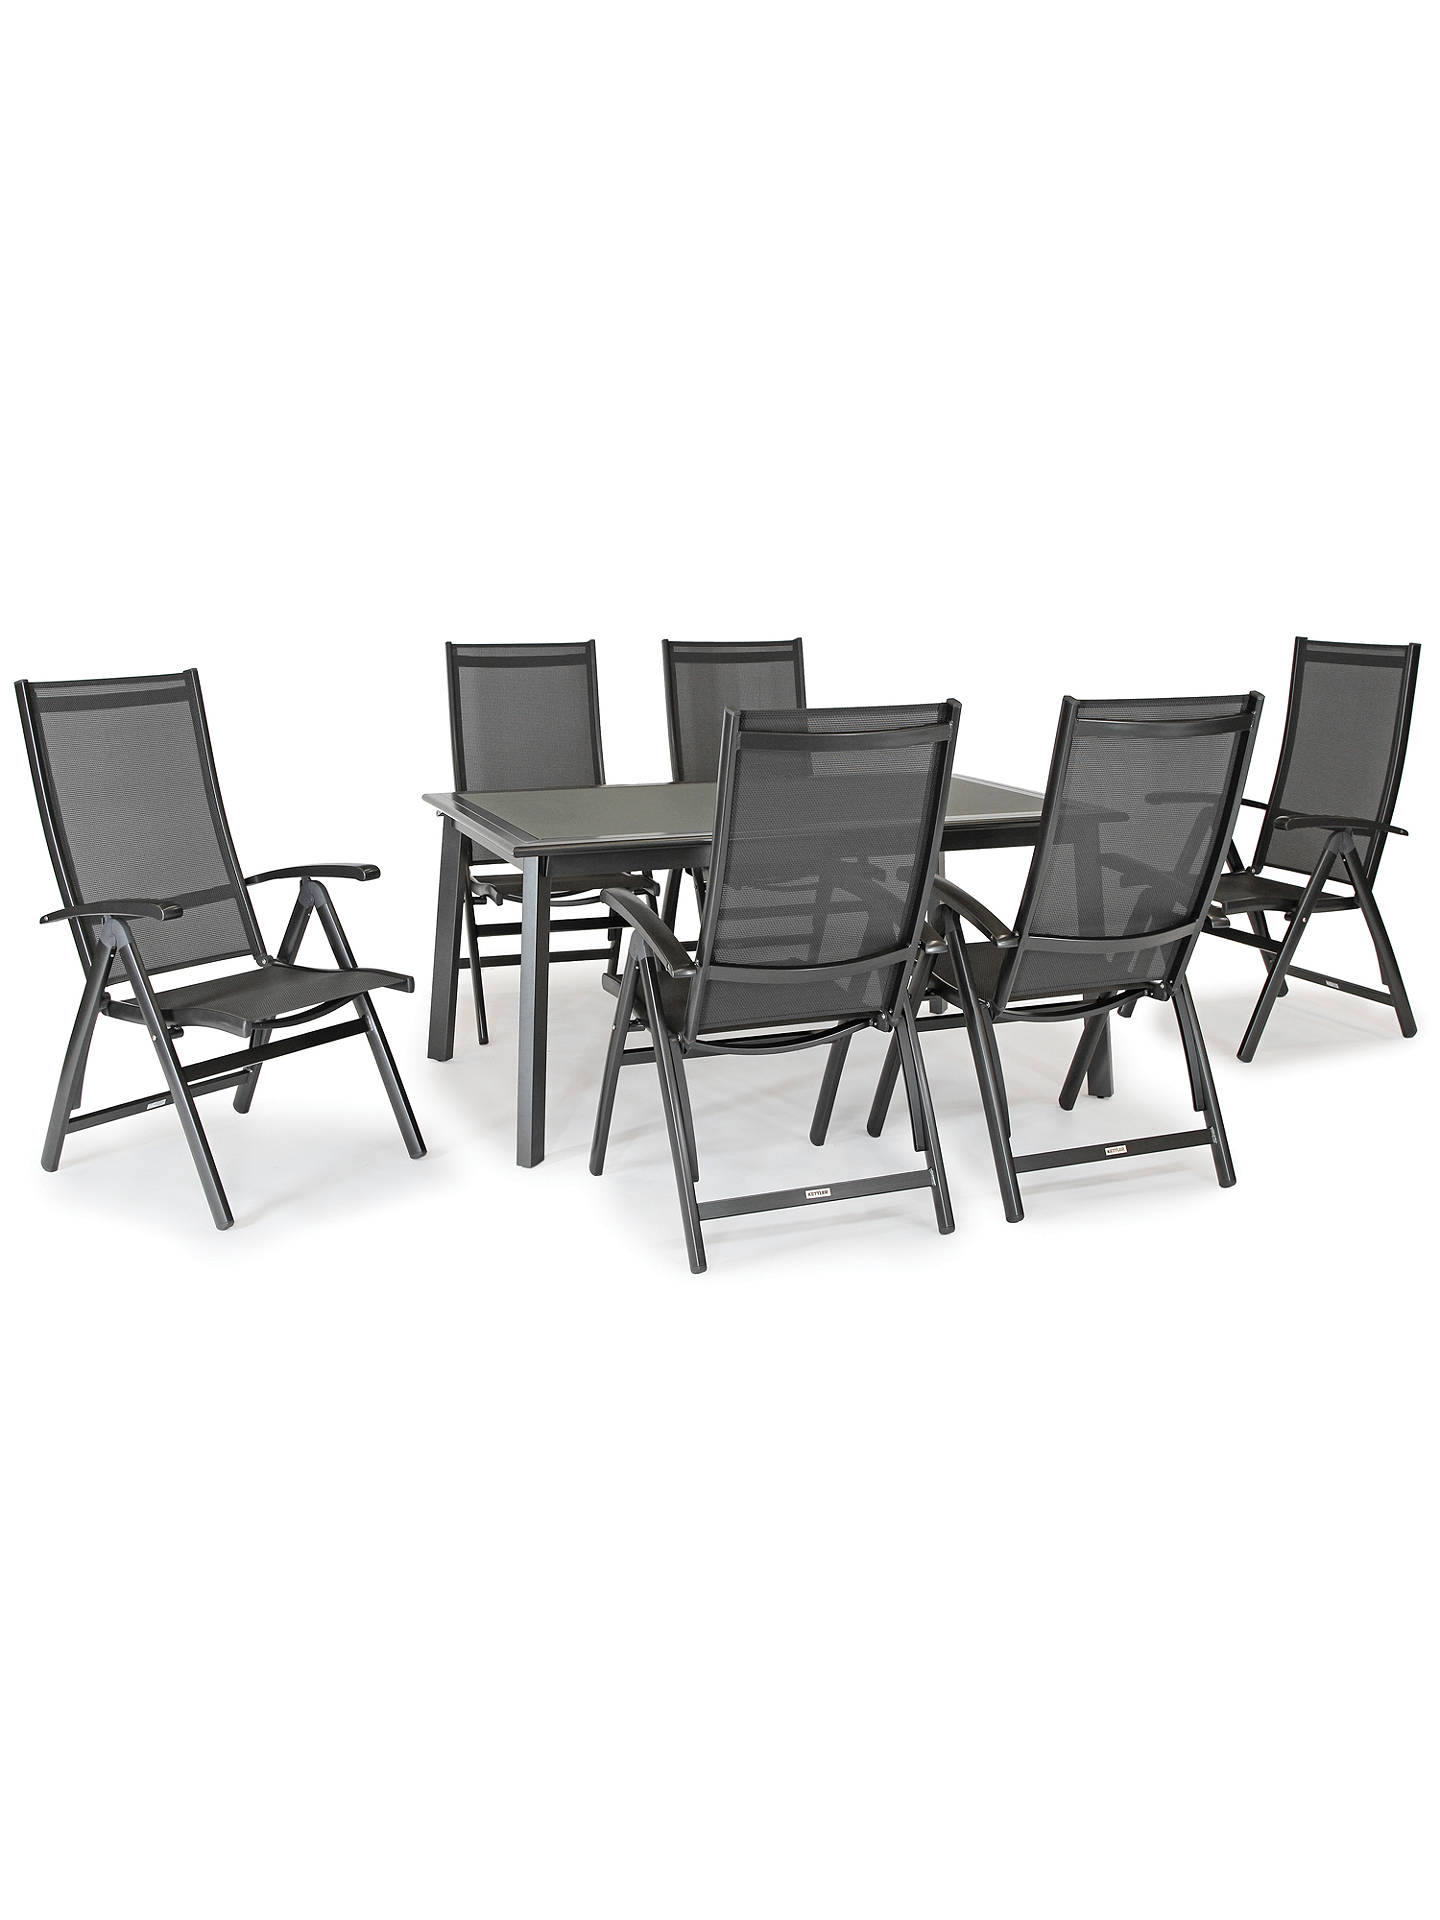 KETTLER Surf 6 Seater Garden Dining Table and Reclining Chairs Set, Grey